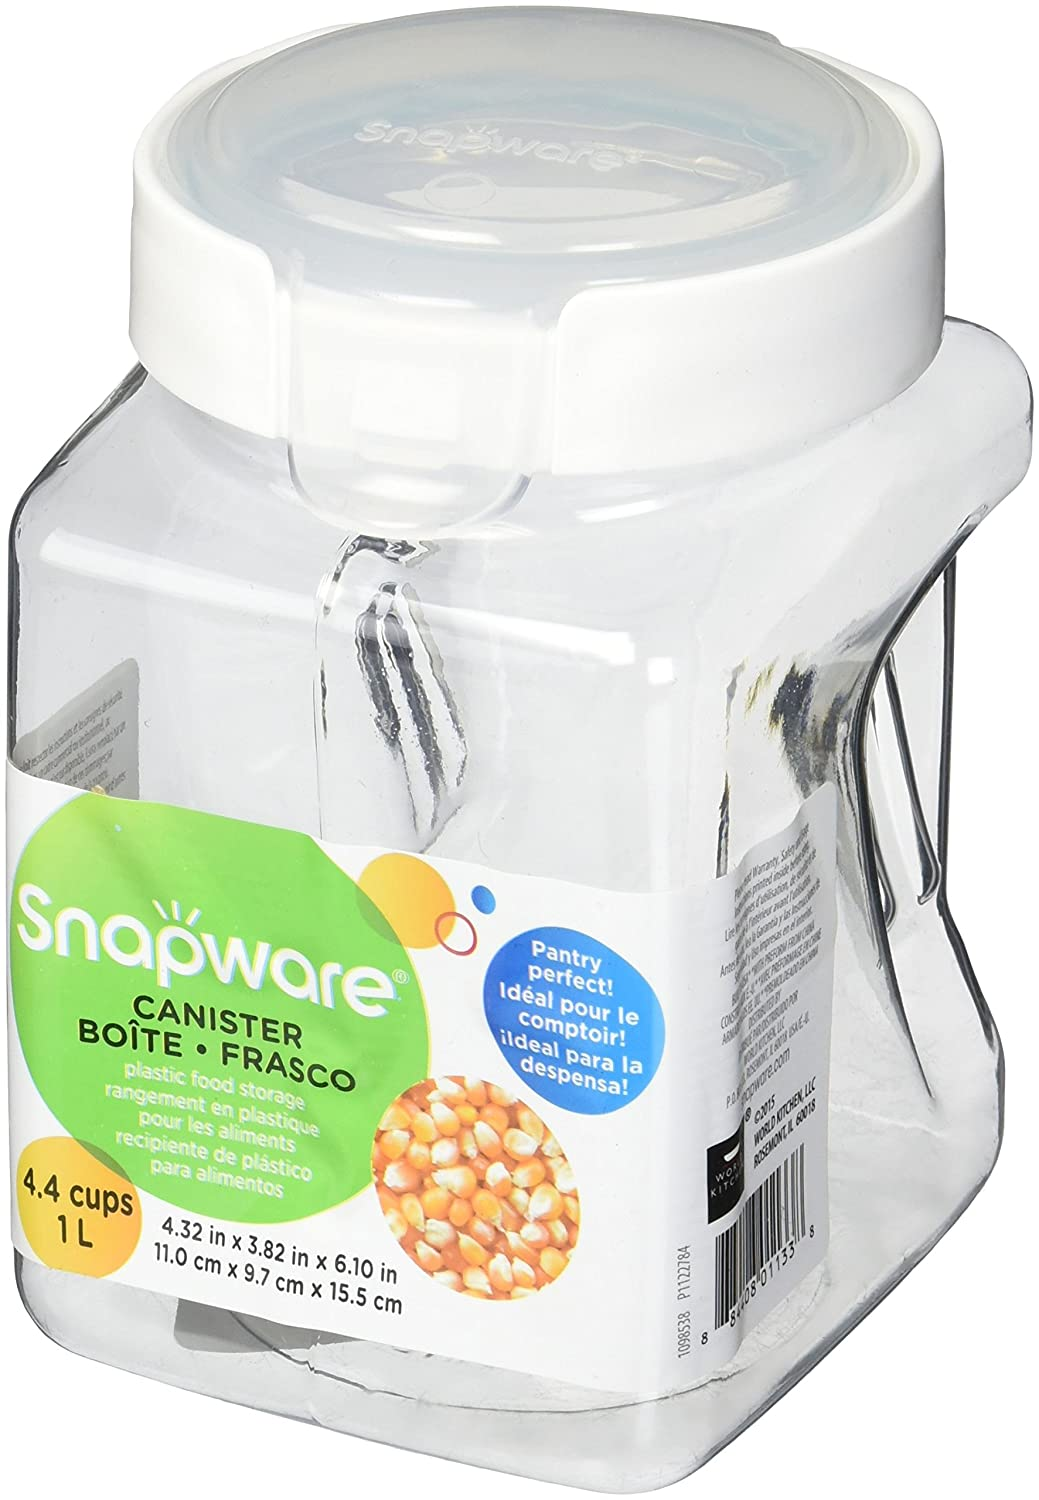 Snapware 1022 1-litre Square-Grip Canister